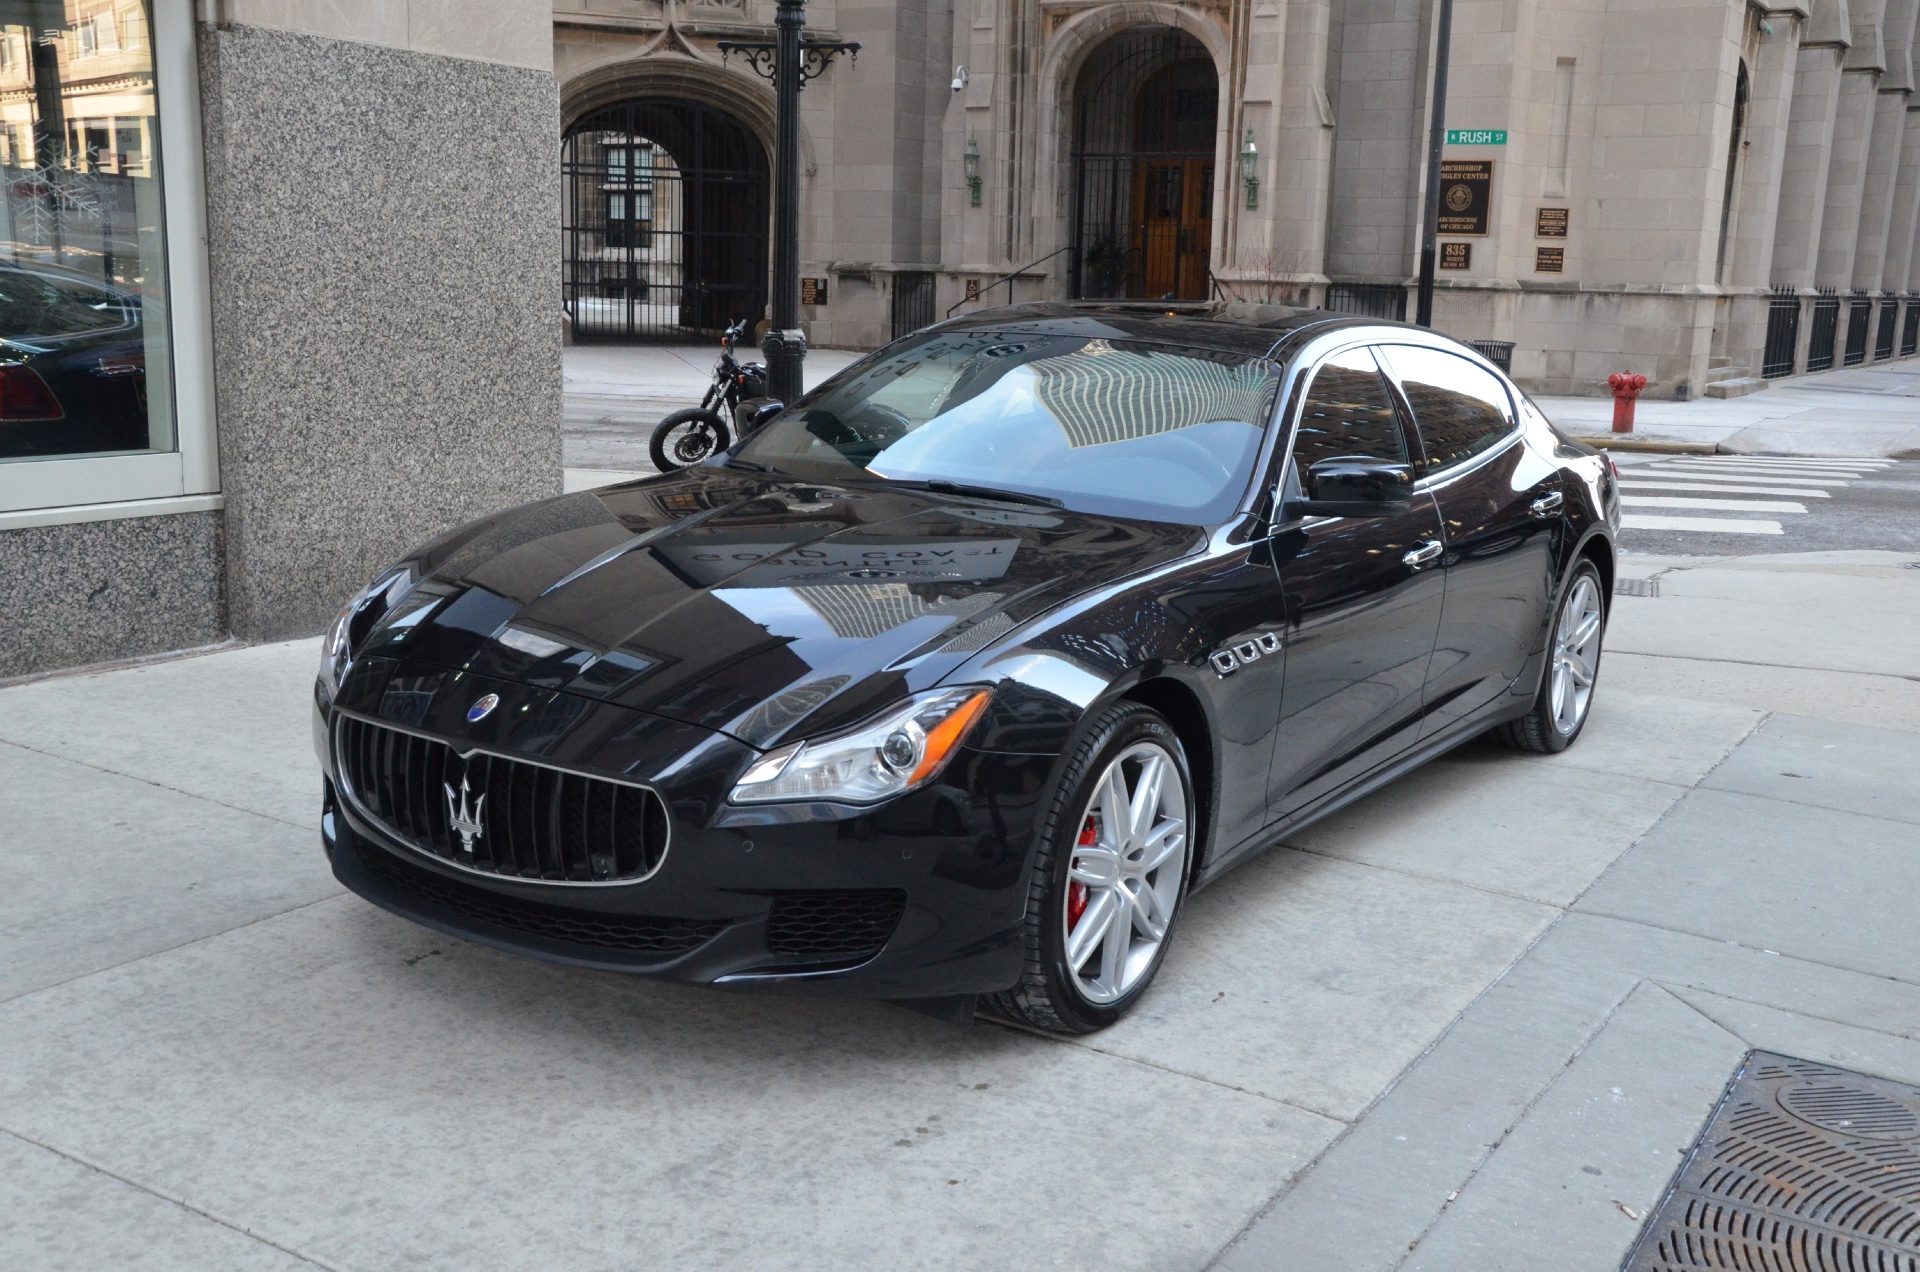 2014 maserati quattroporte s q4 s q4 stock m238 for sale near chicago il il maserati dealer. Black Bedroom Furniture Sets. Home Design Ideas